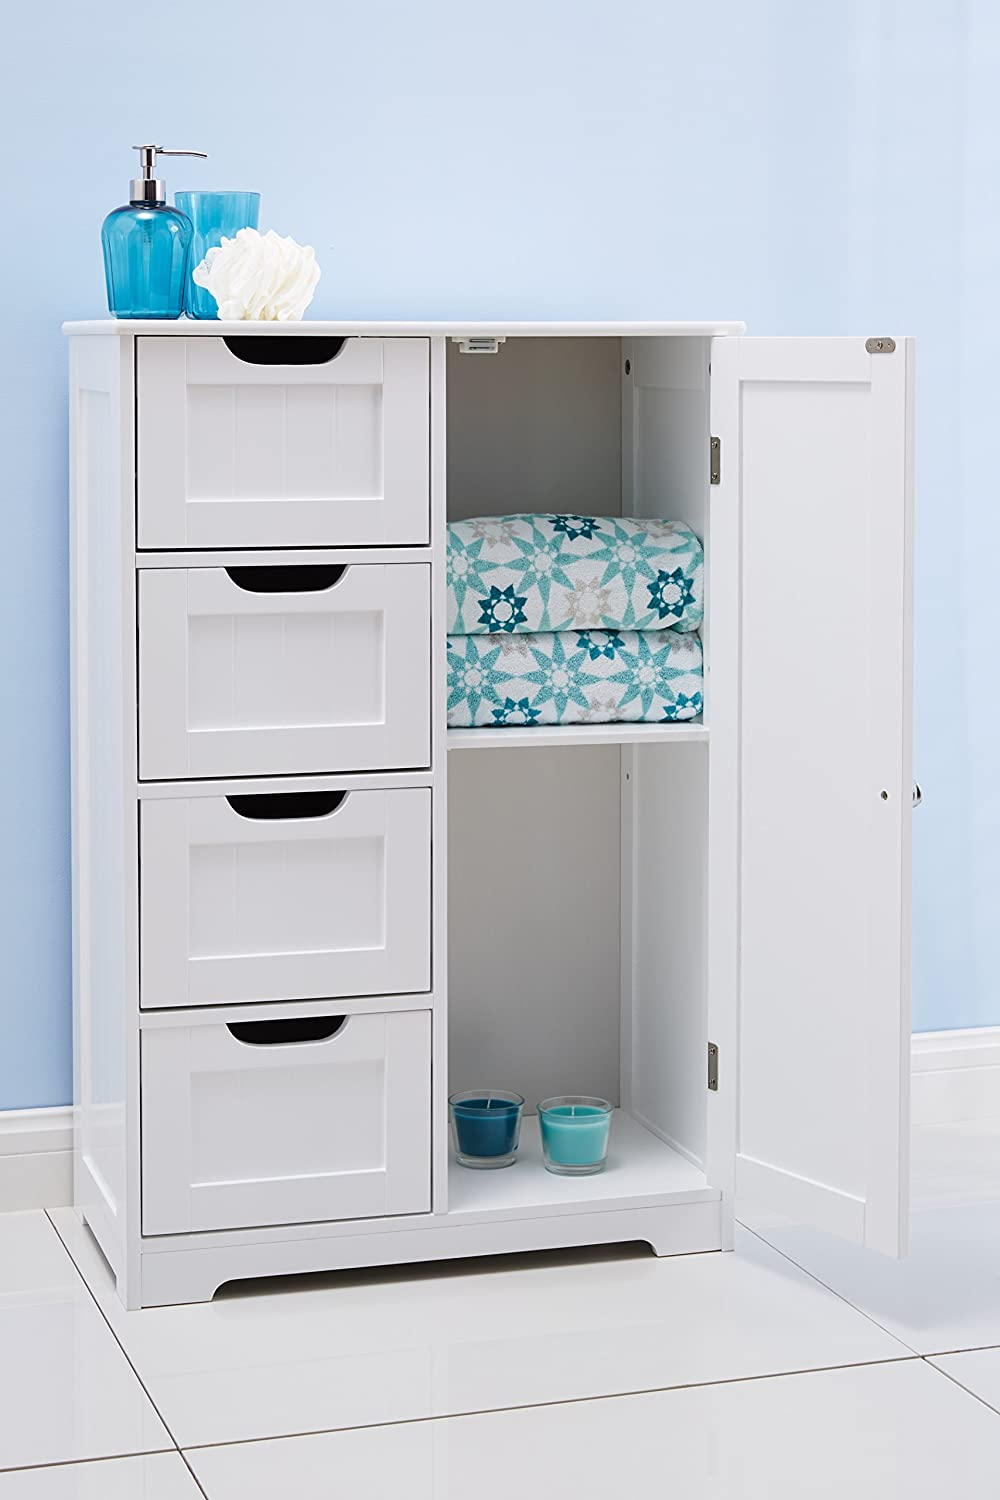 Portland 82x55x30cm White wooden bathroom cabinet four drawers ...